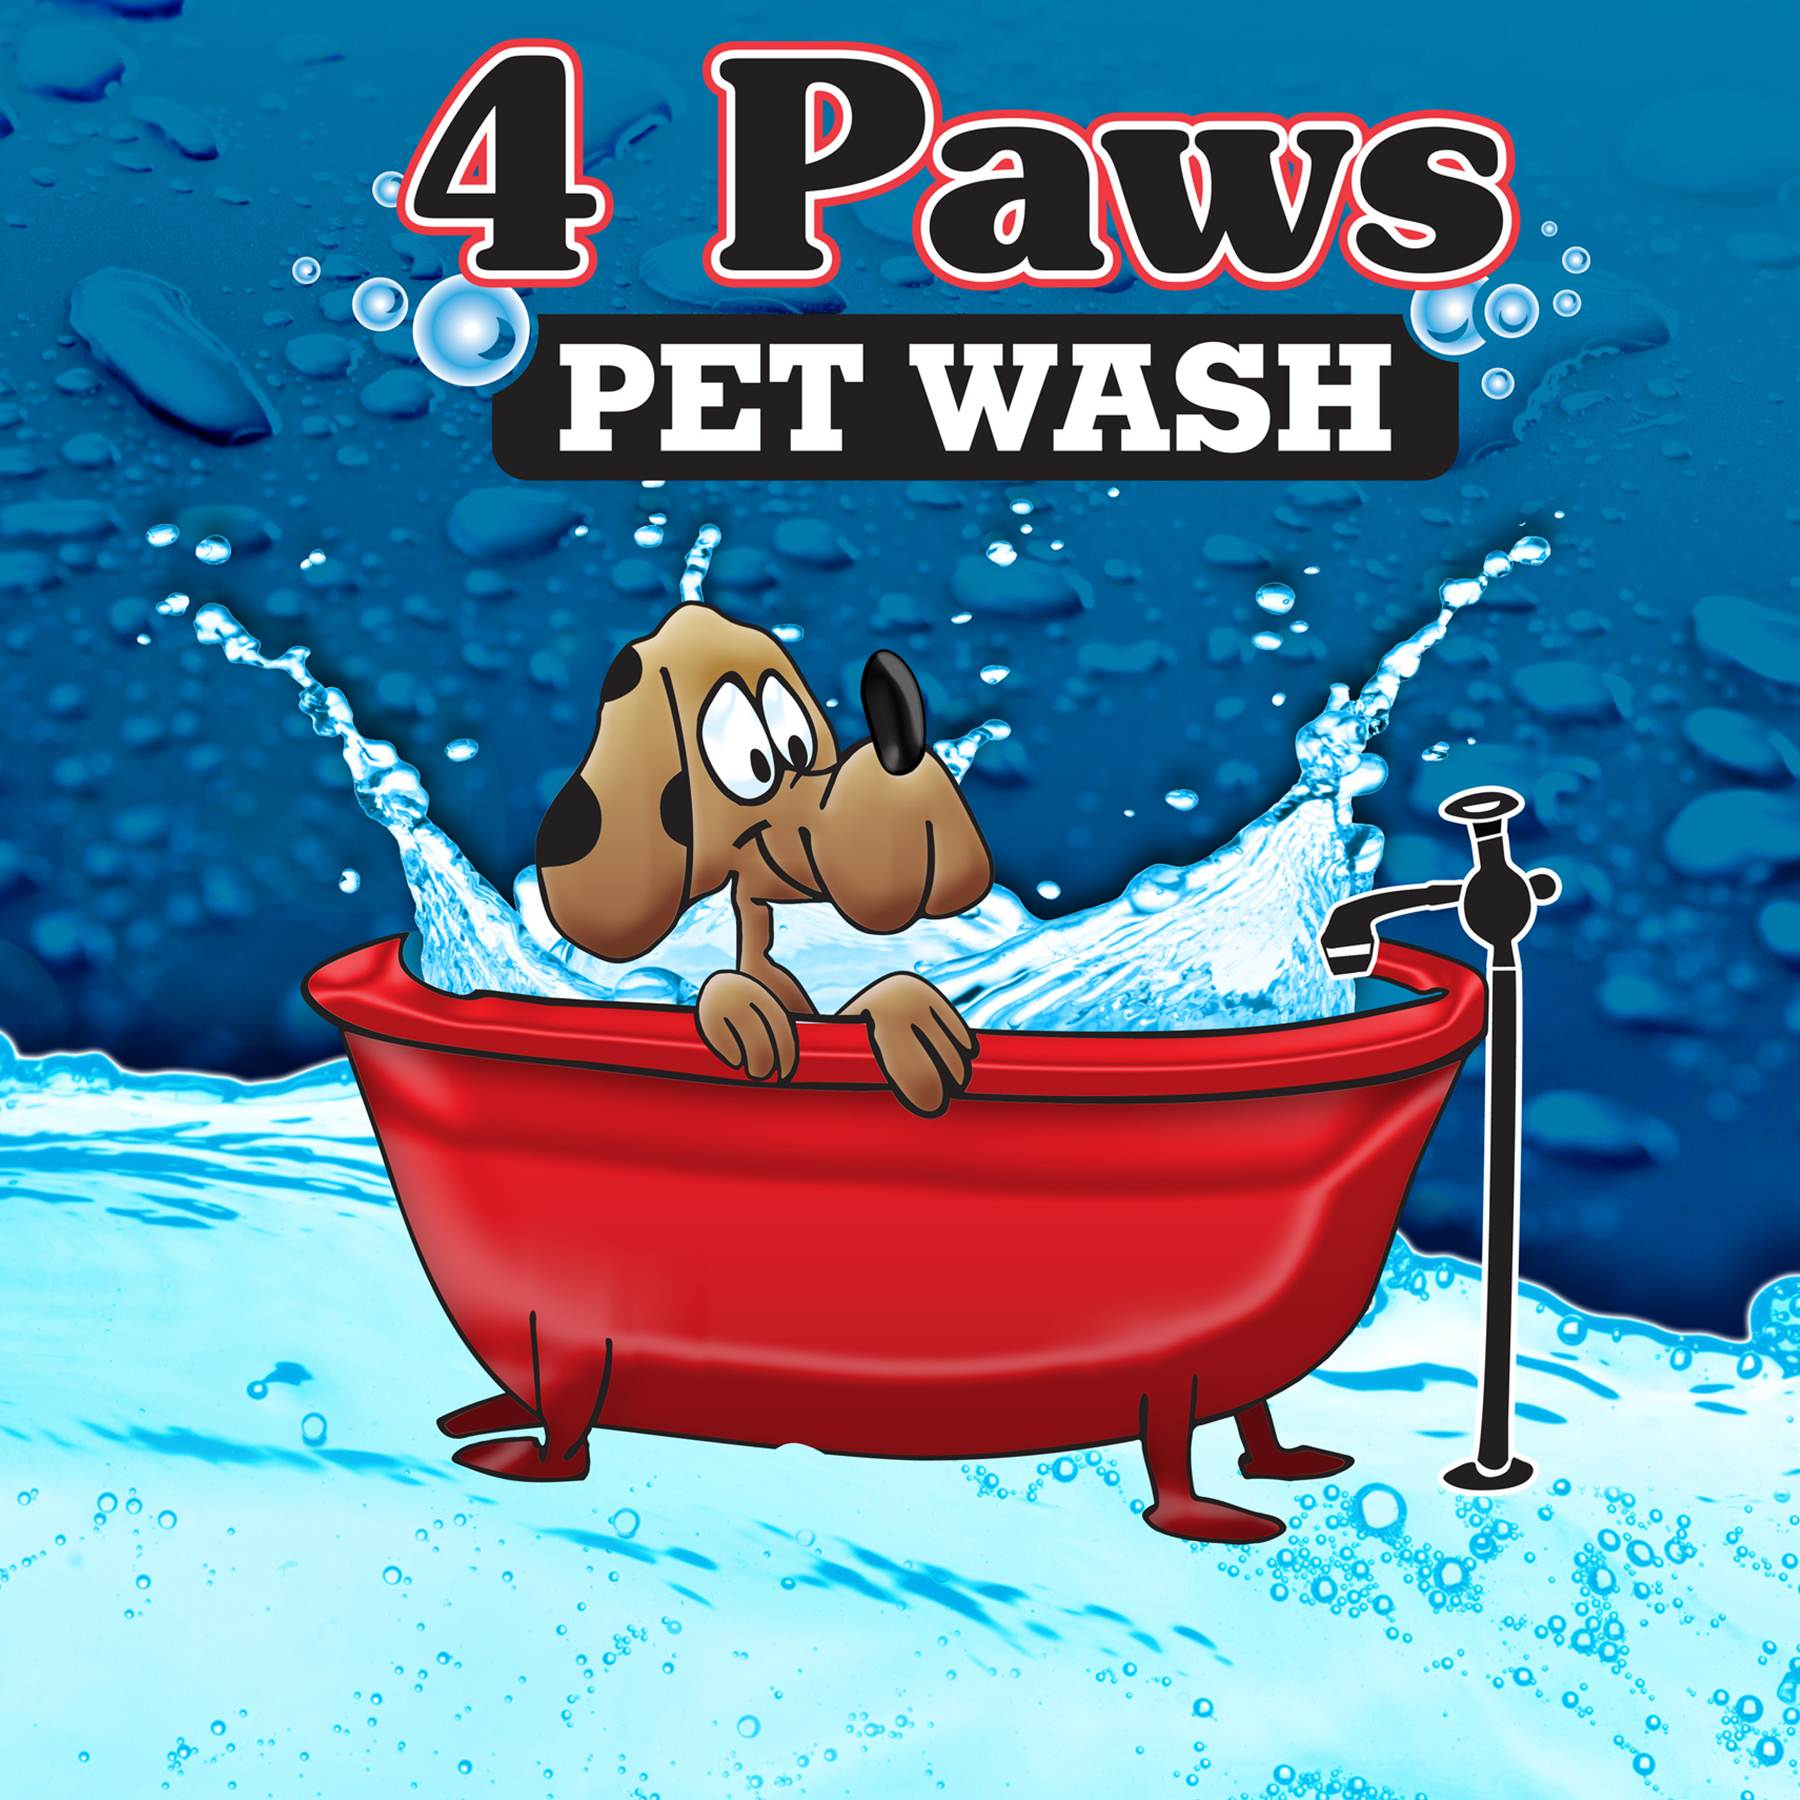 4 Paws Pet Wash Chemicals